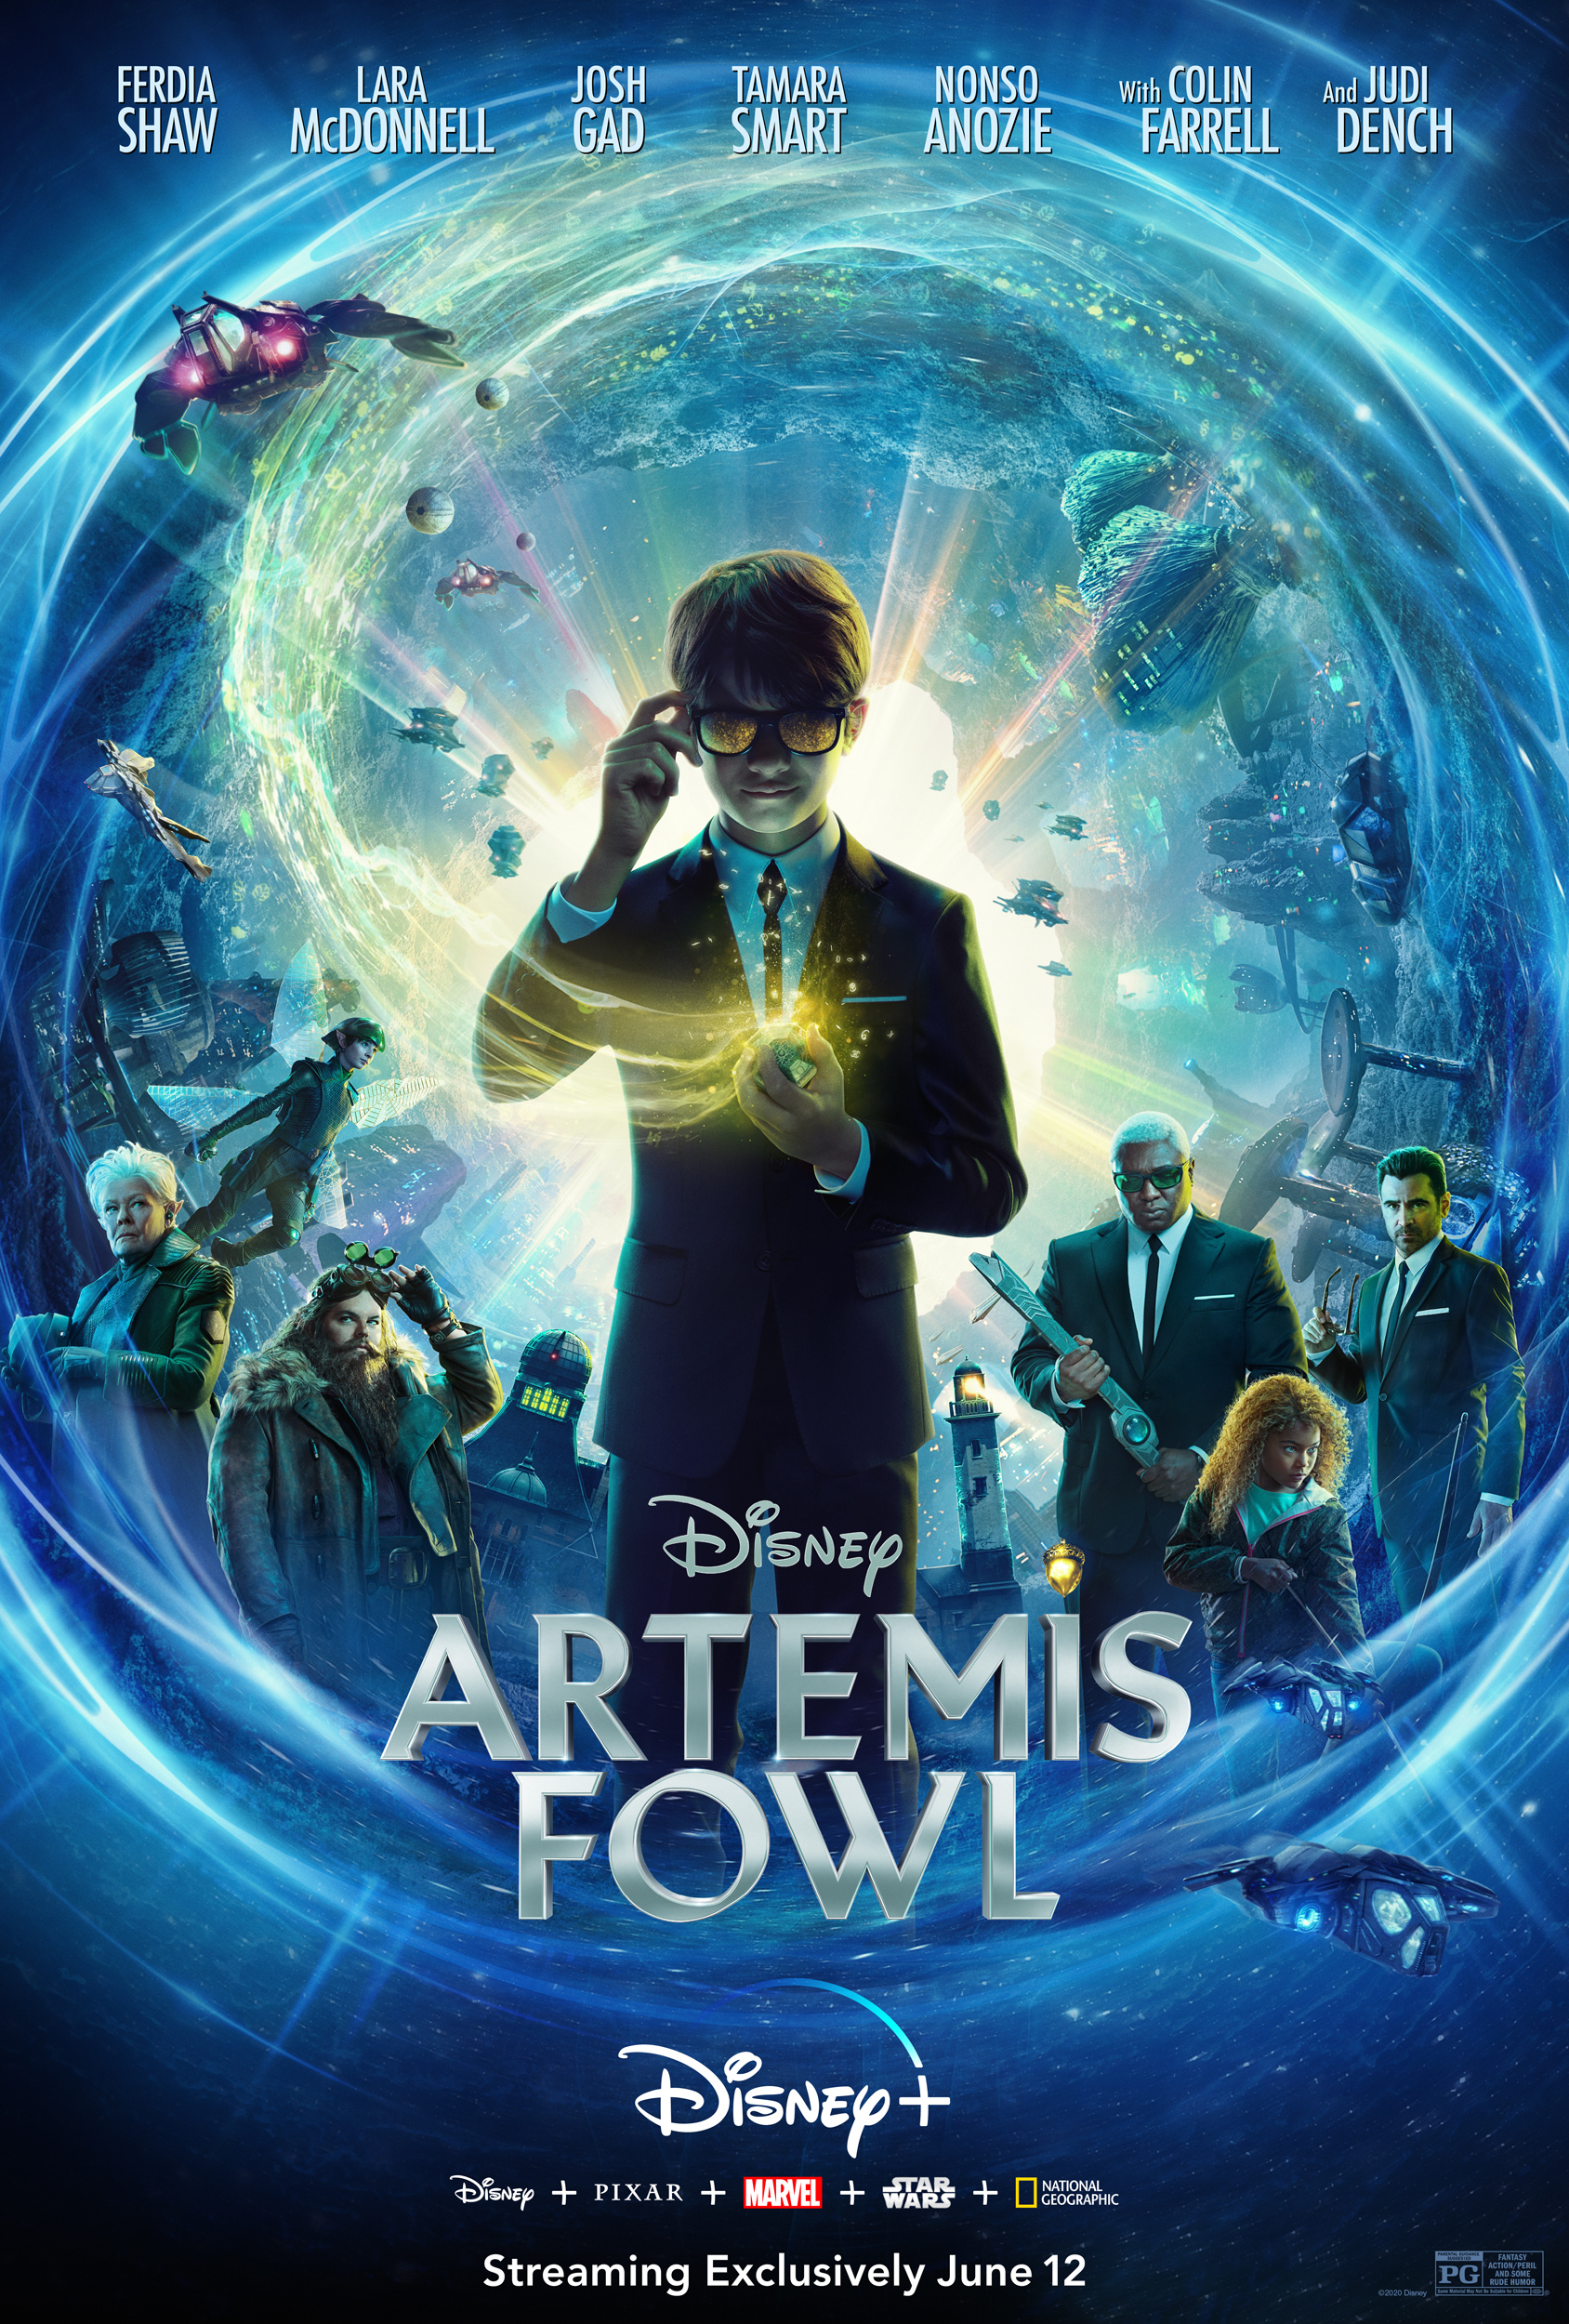 Considering watching Artemis Fowl with your kids? This Artemis Fowl movie review will tell you what ages it's perfect for!